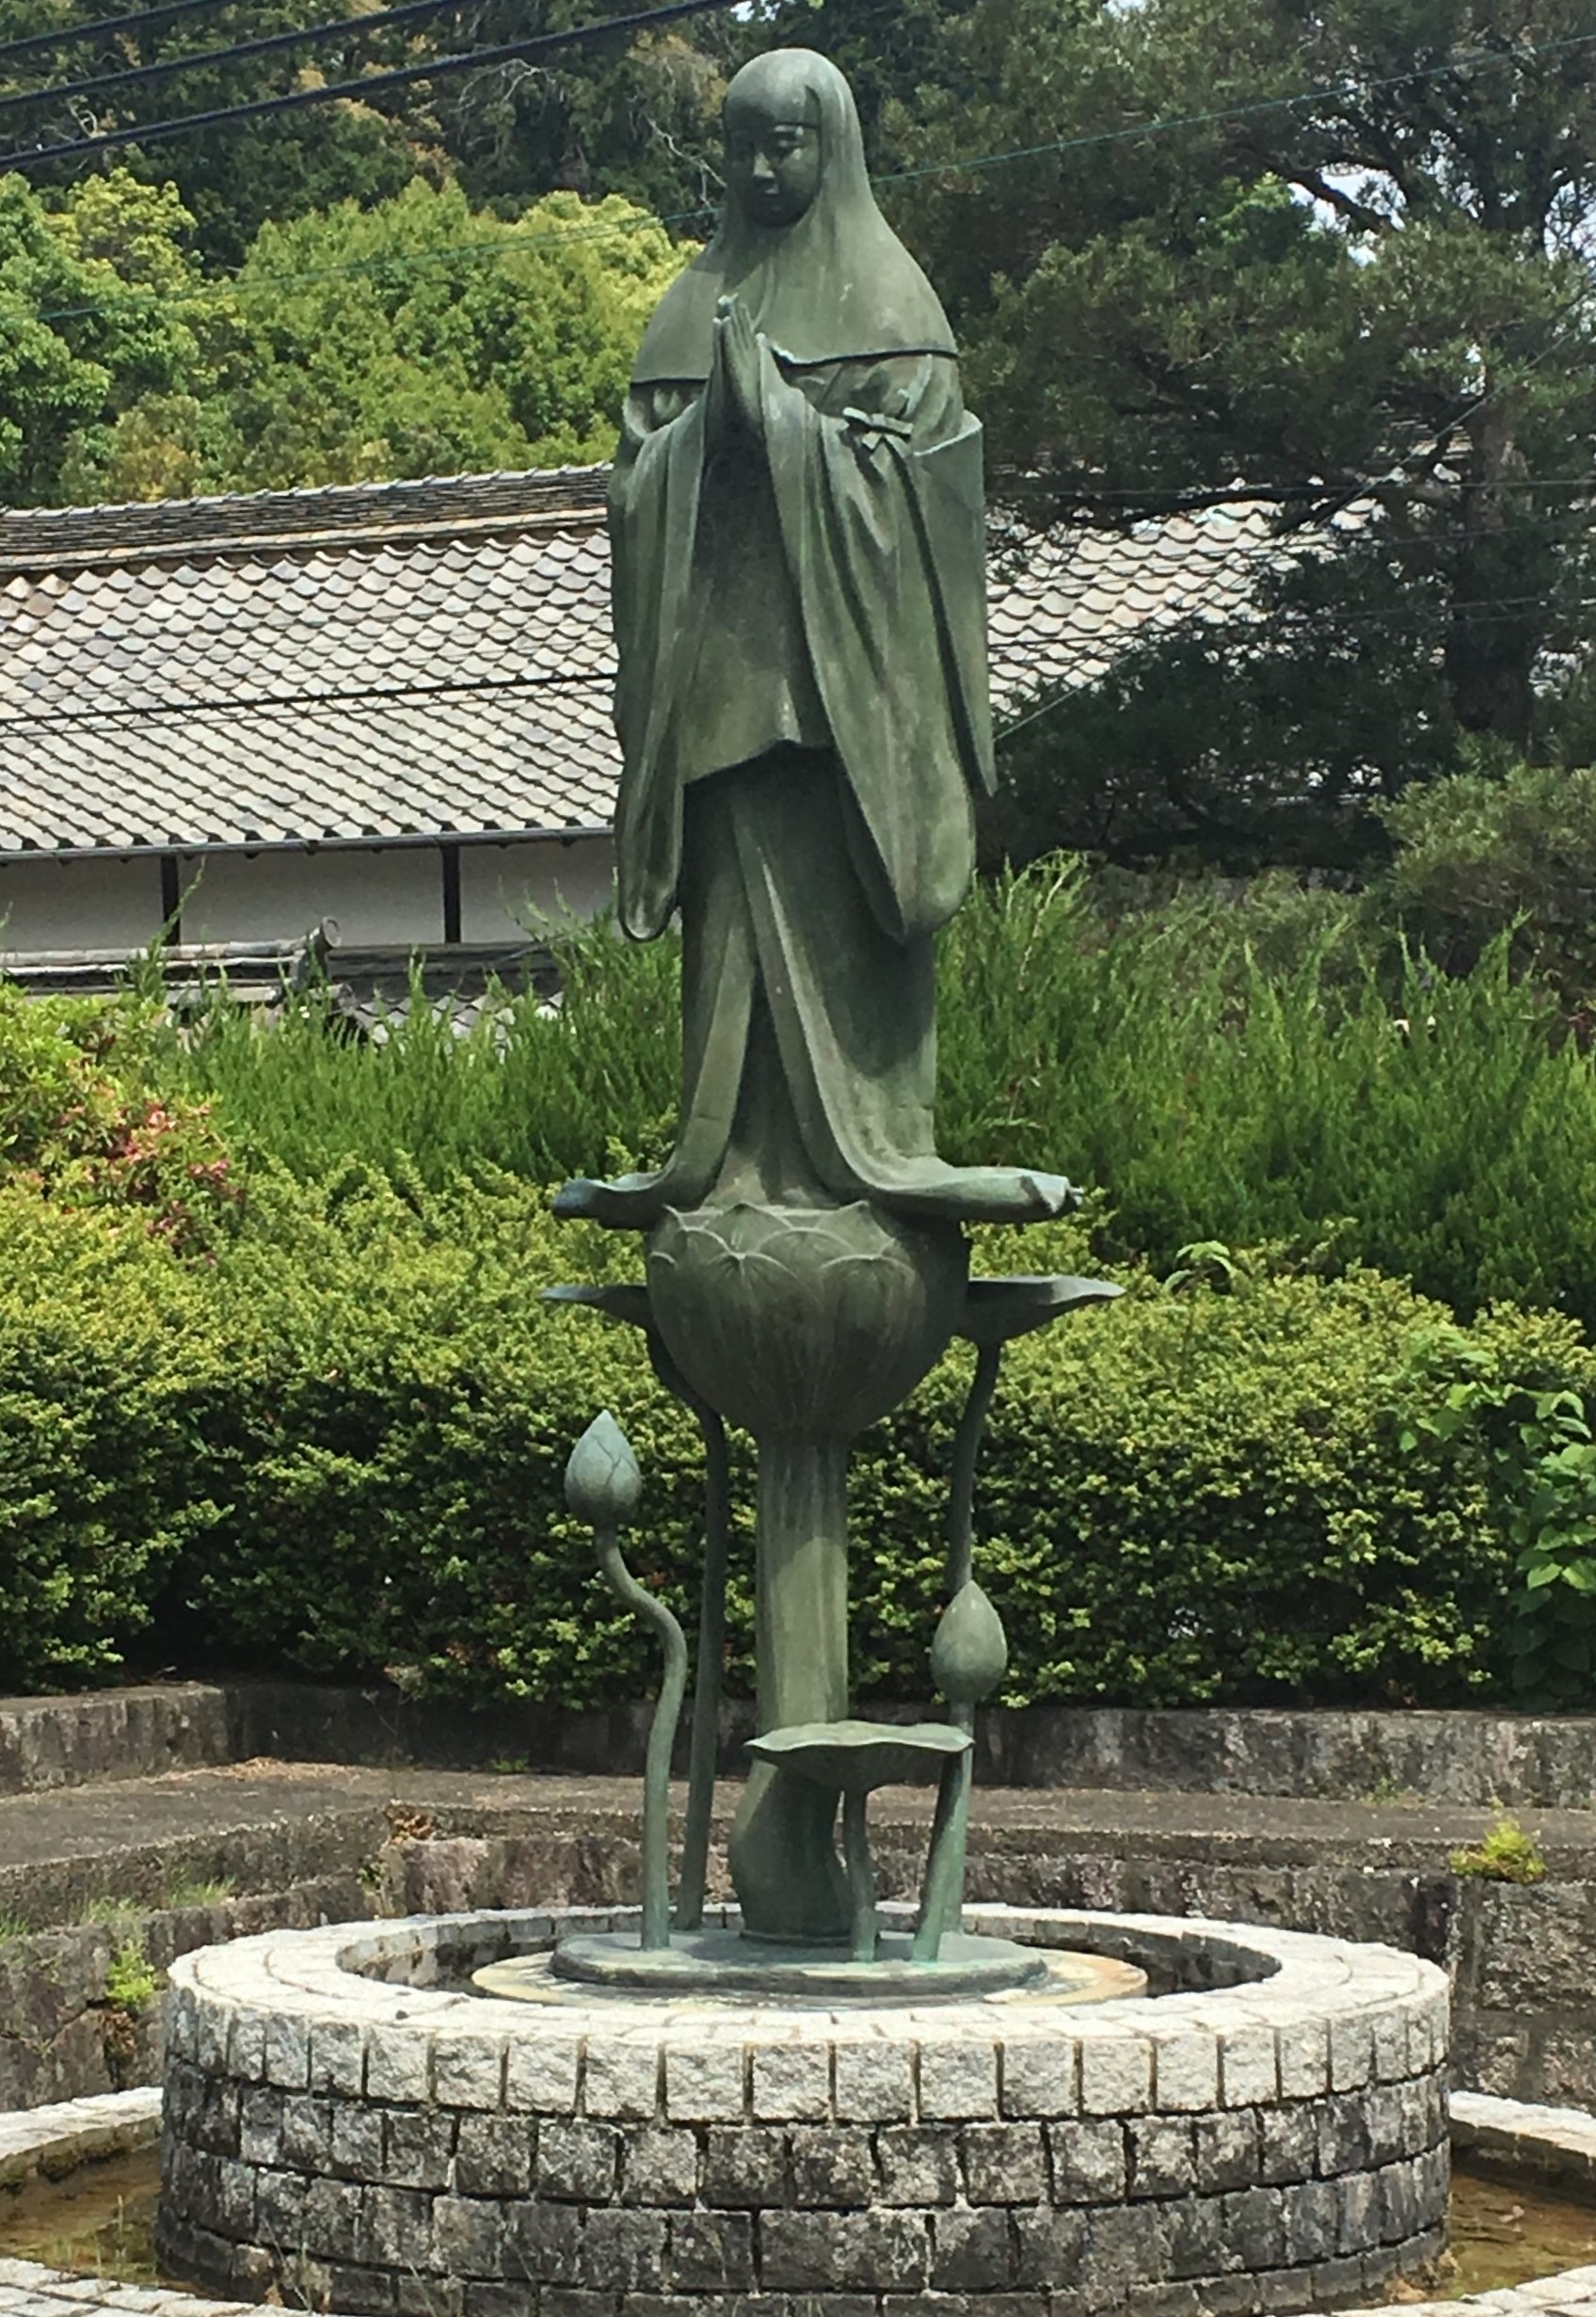 Green statue of princess chujo on a lotus at Taima-dera Temple in Nara